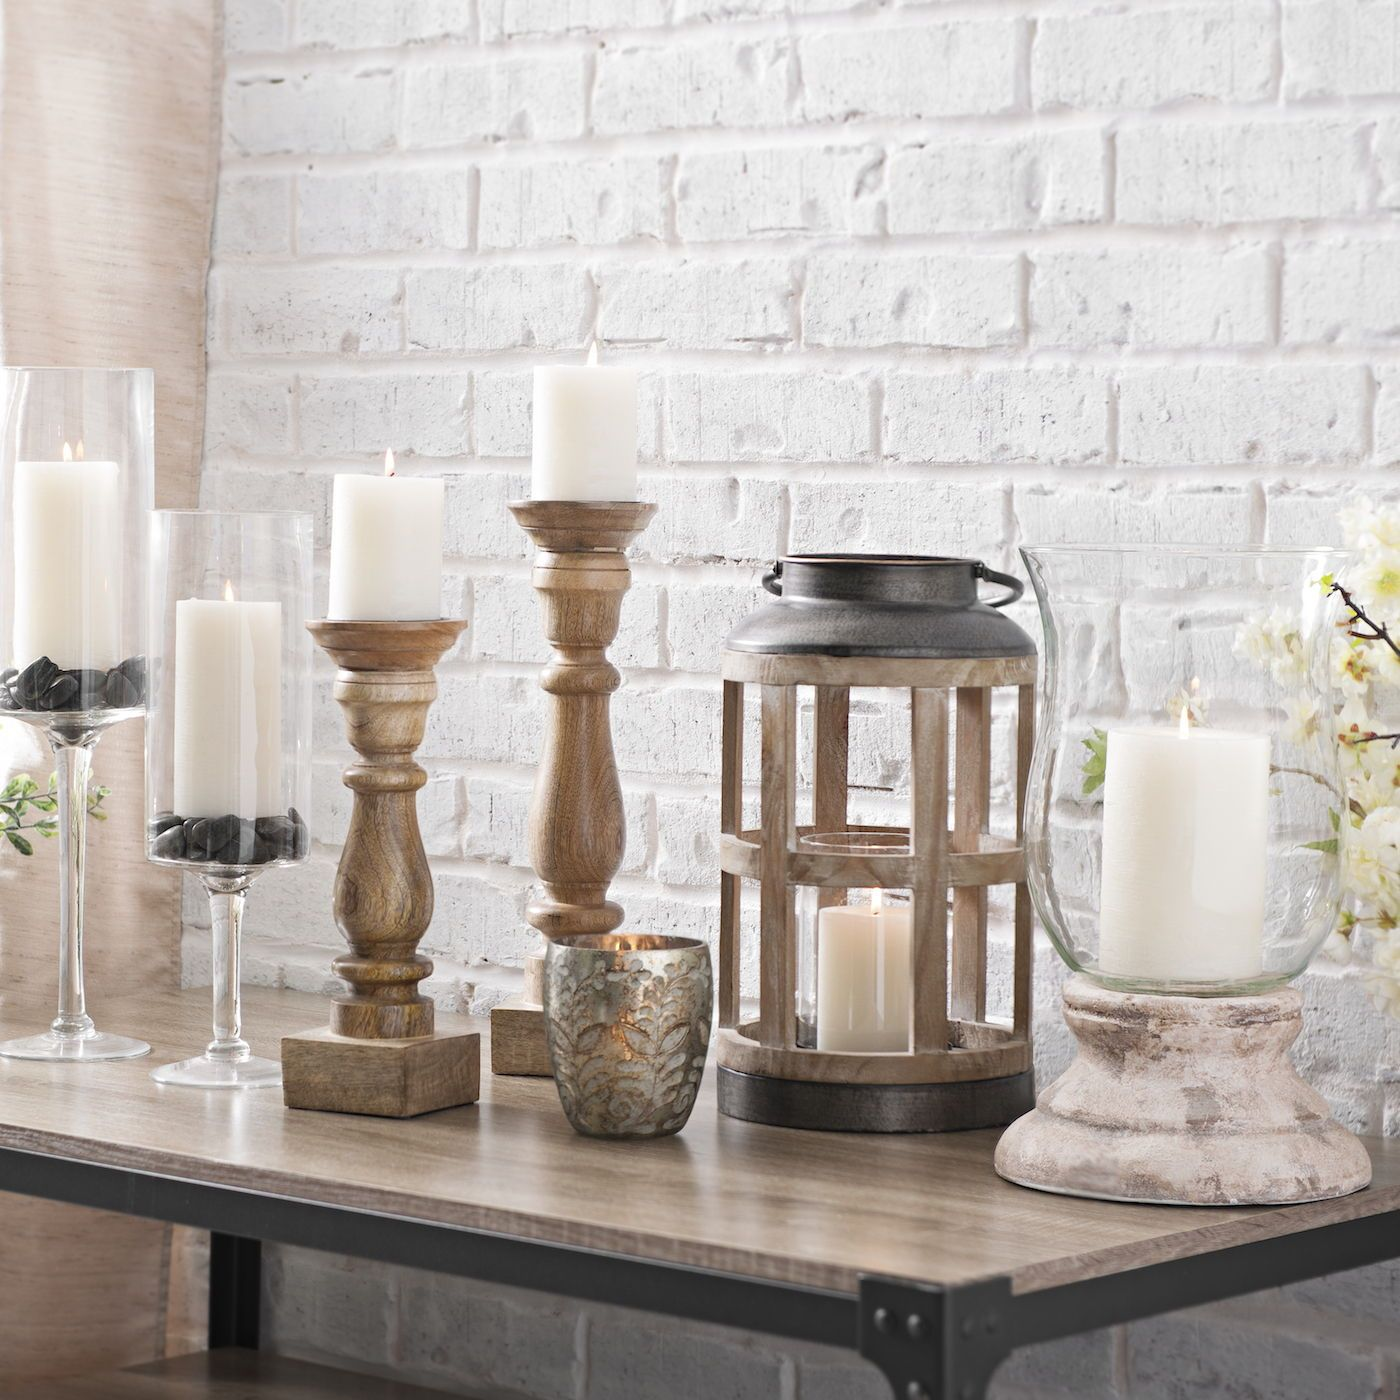 Set The Mood For Everything: Set The Mood For Your Entire Home With A Candle-lit